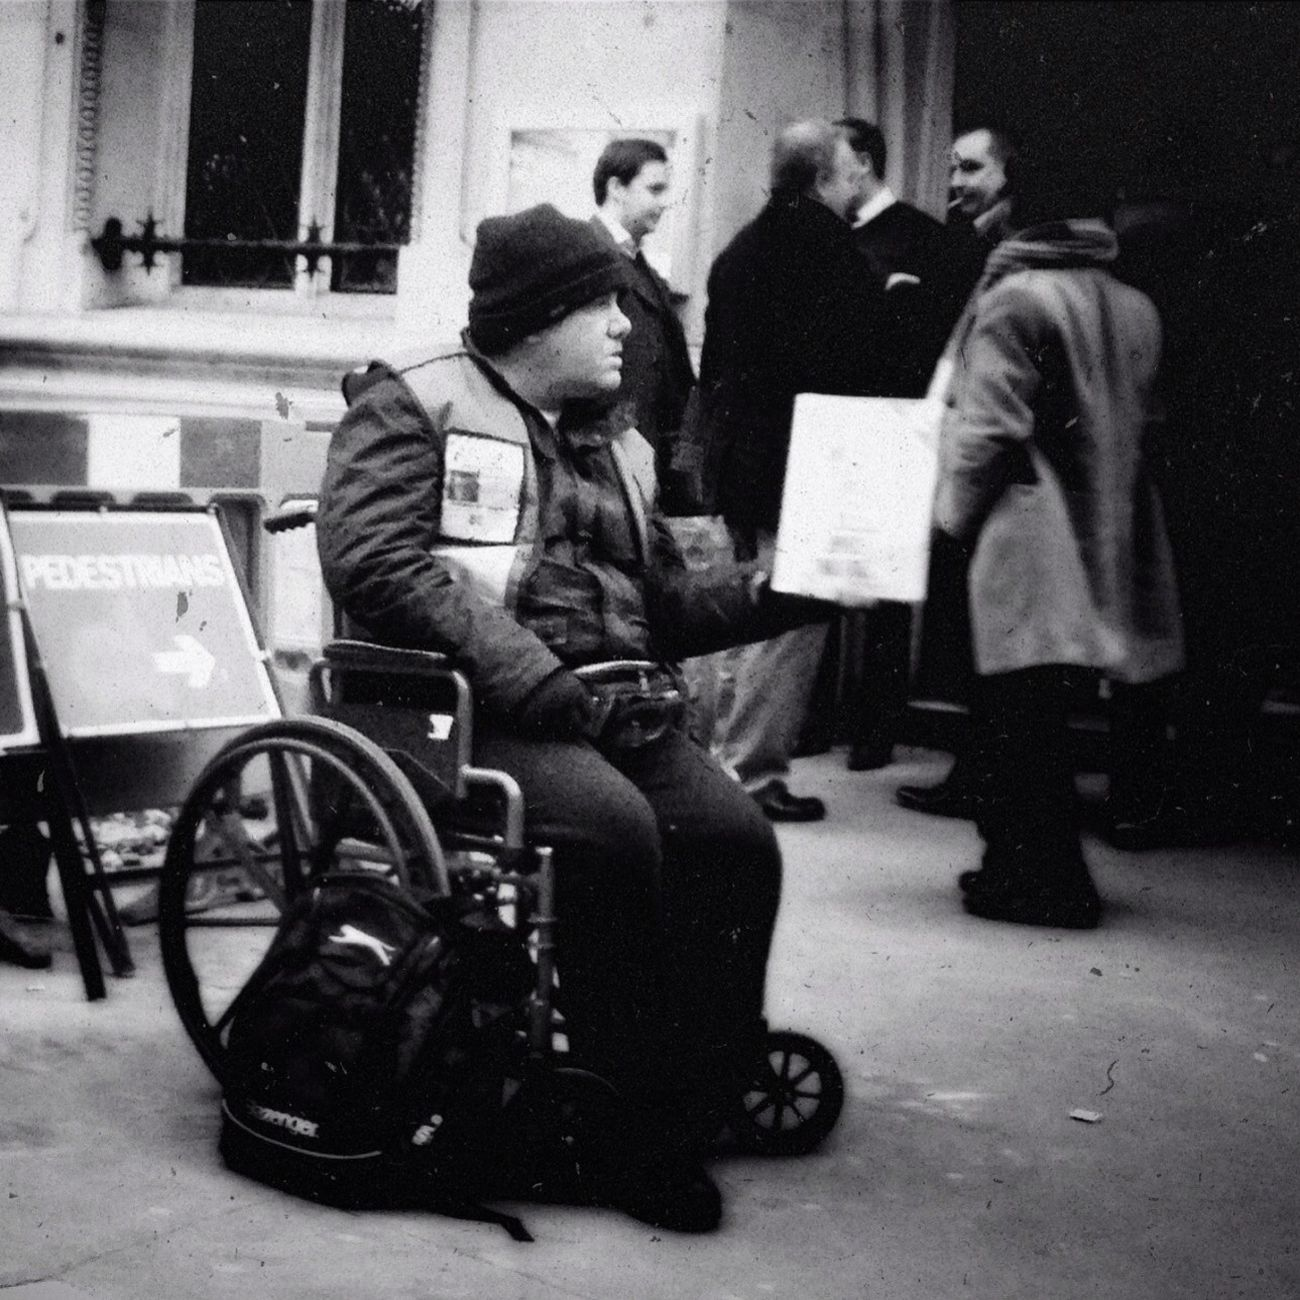 Streetphotography AMPt_community The Big Issue Series Street Of London Series